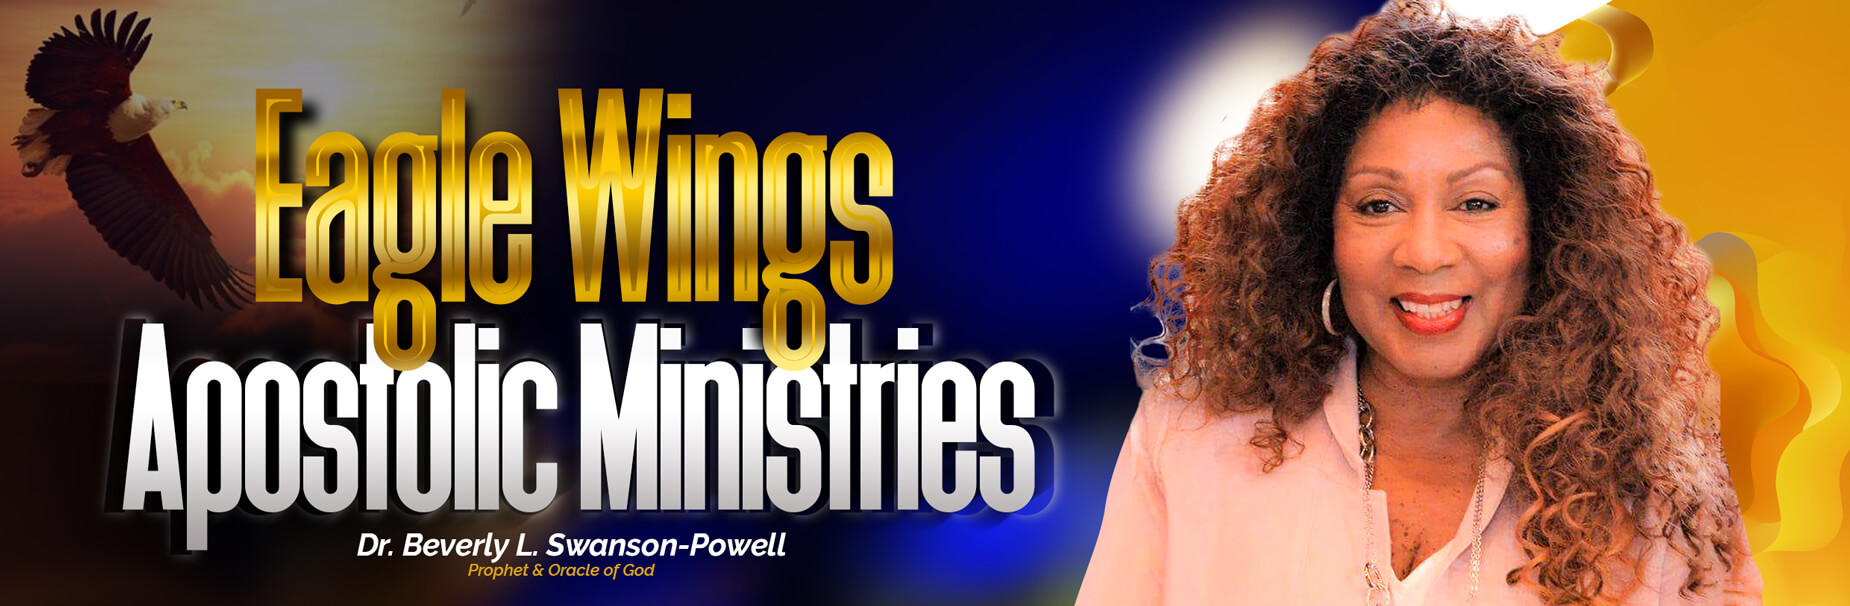 Eagle Wings Apostolic Ministries Banner